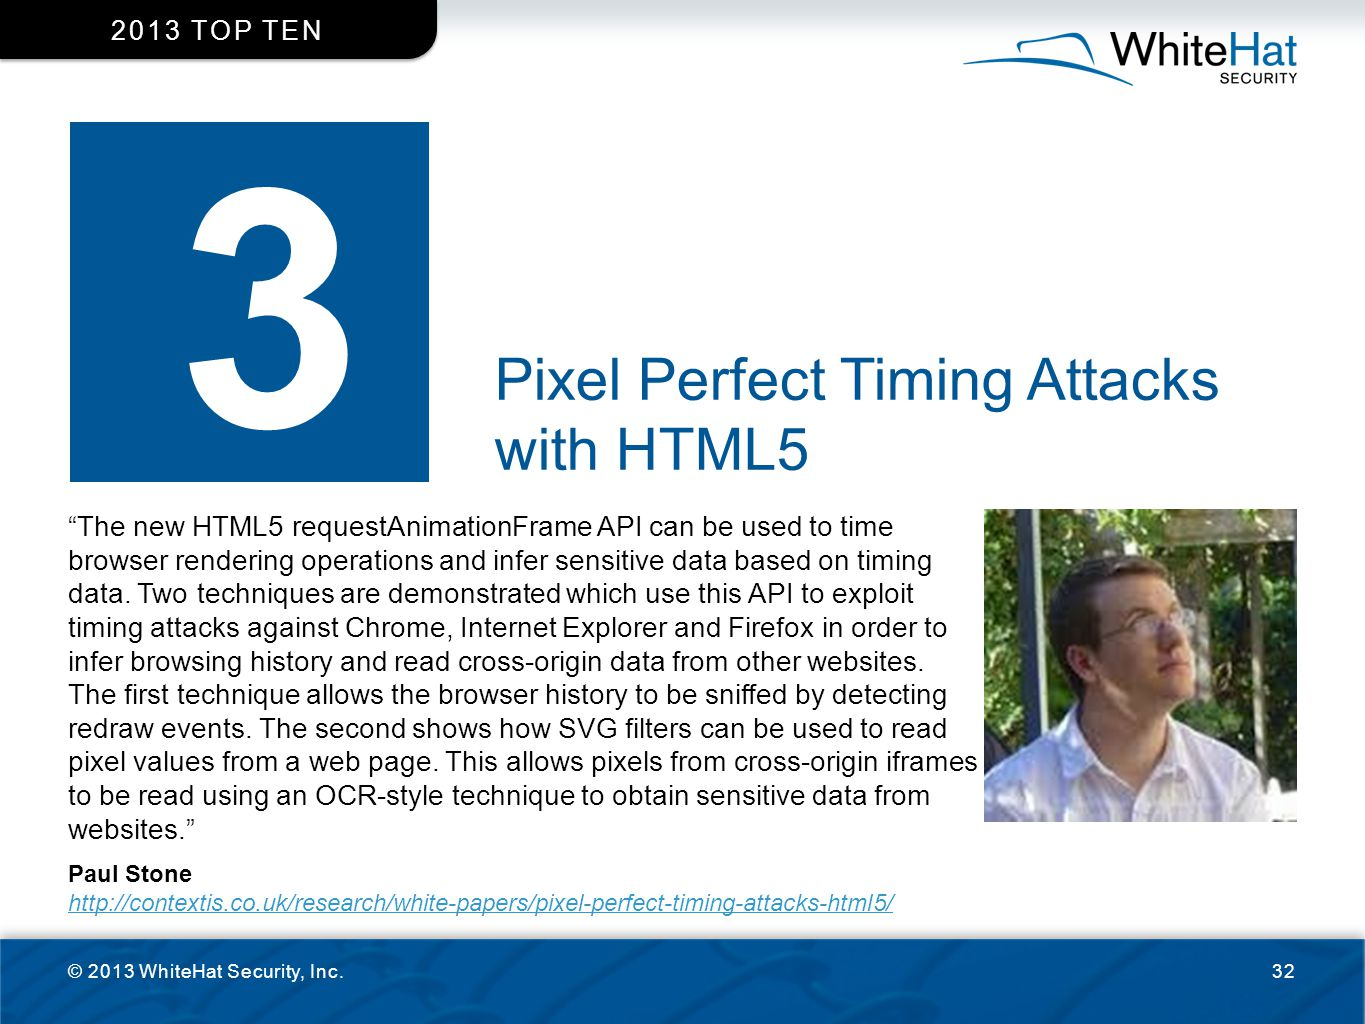 3 Pixel Perfect Timing Attacks with HTML5